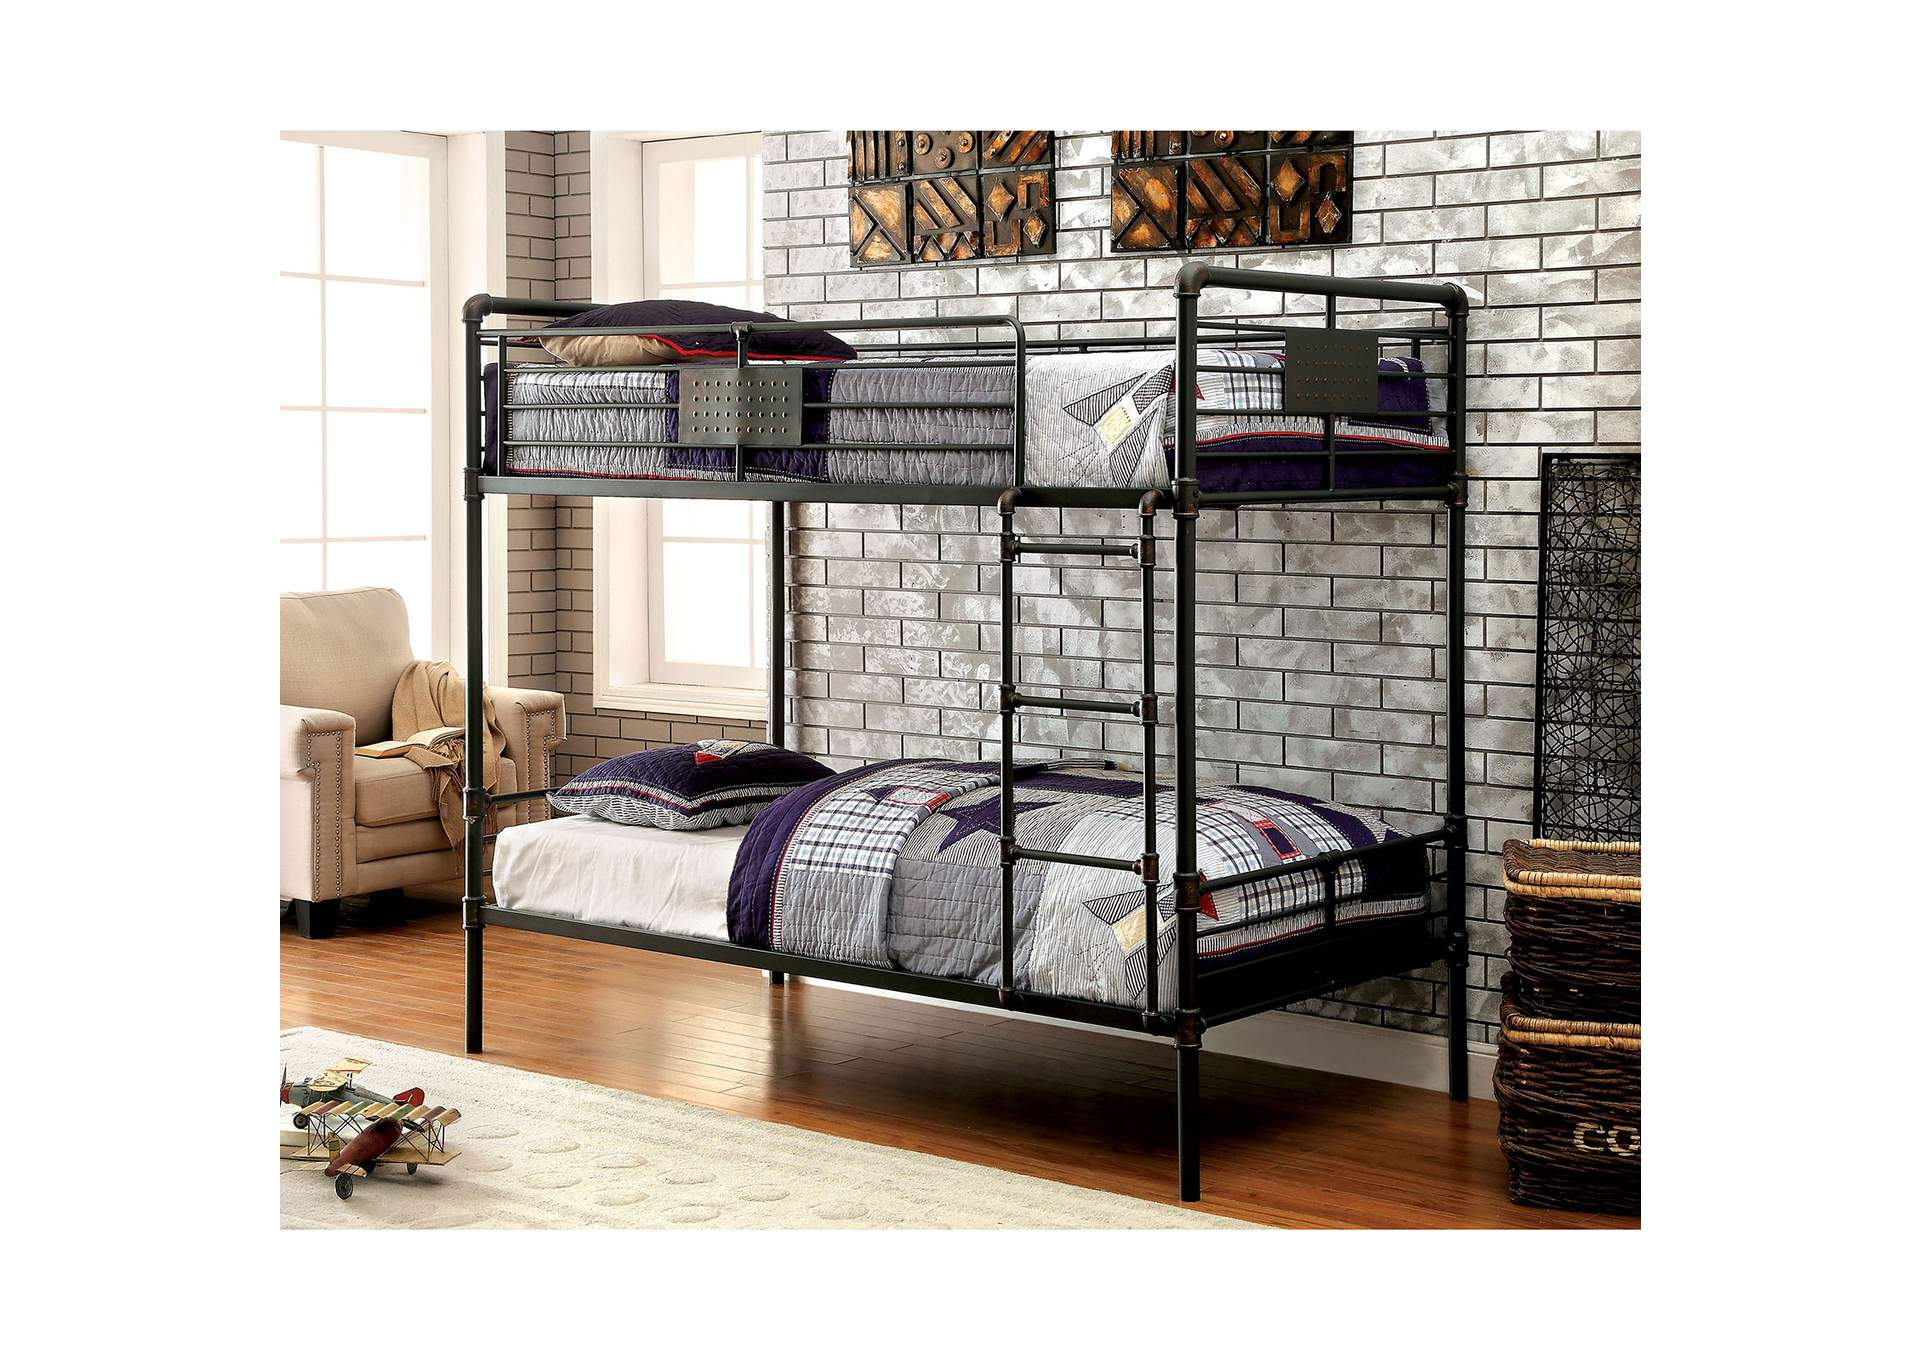 Olga l Antique Black Metal Twin/Twin Bunk Bed w/Ladder,Furniture of America TX